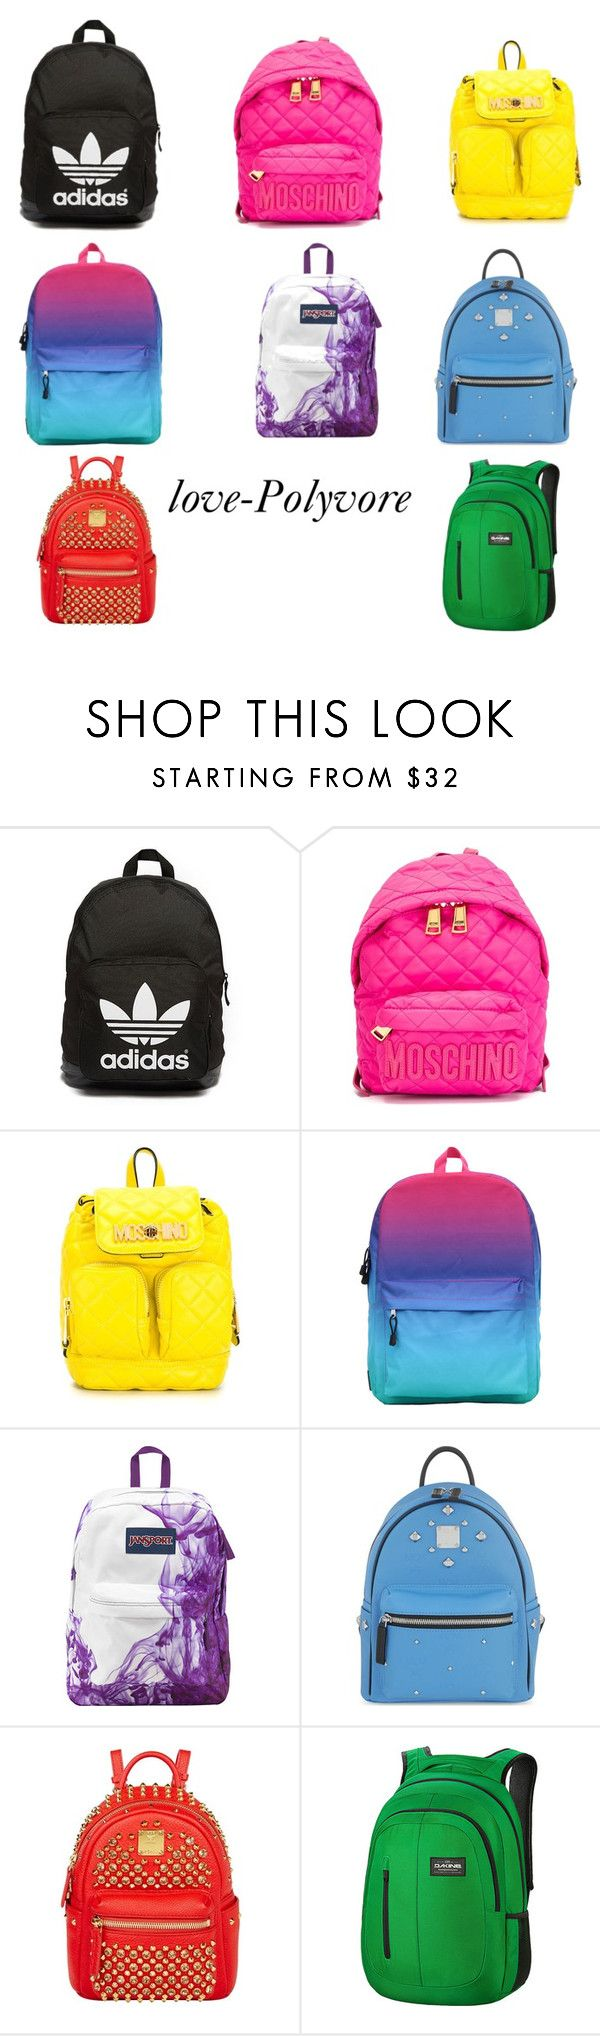 """SchoolBags-Love"" by golden-videos ❤ liked on Polyvore featuring adidas Originals, Moschino, JanSport, MCM and Dakine"